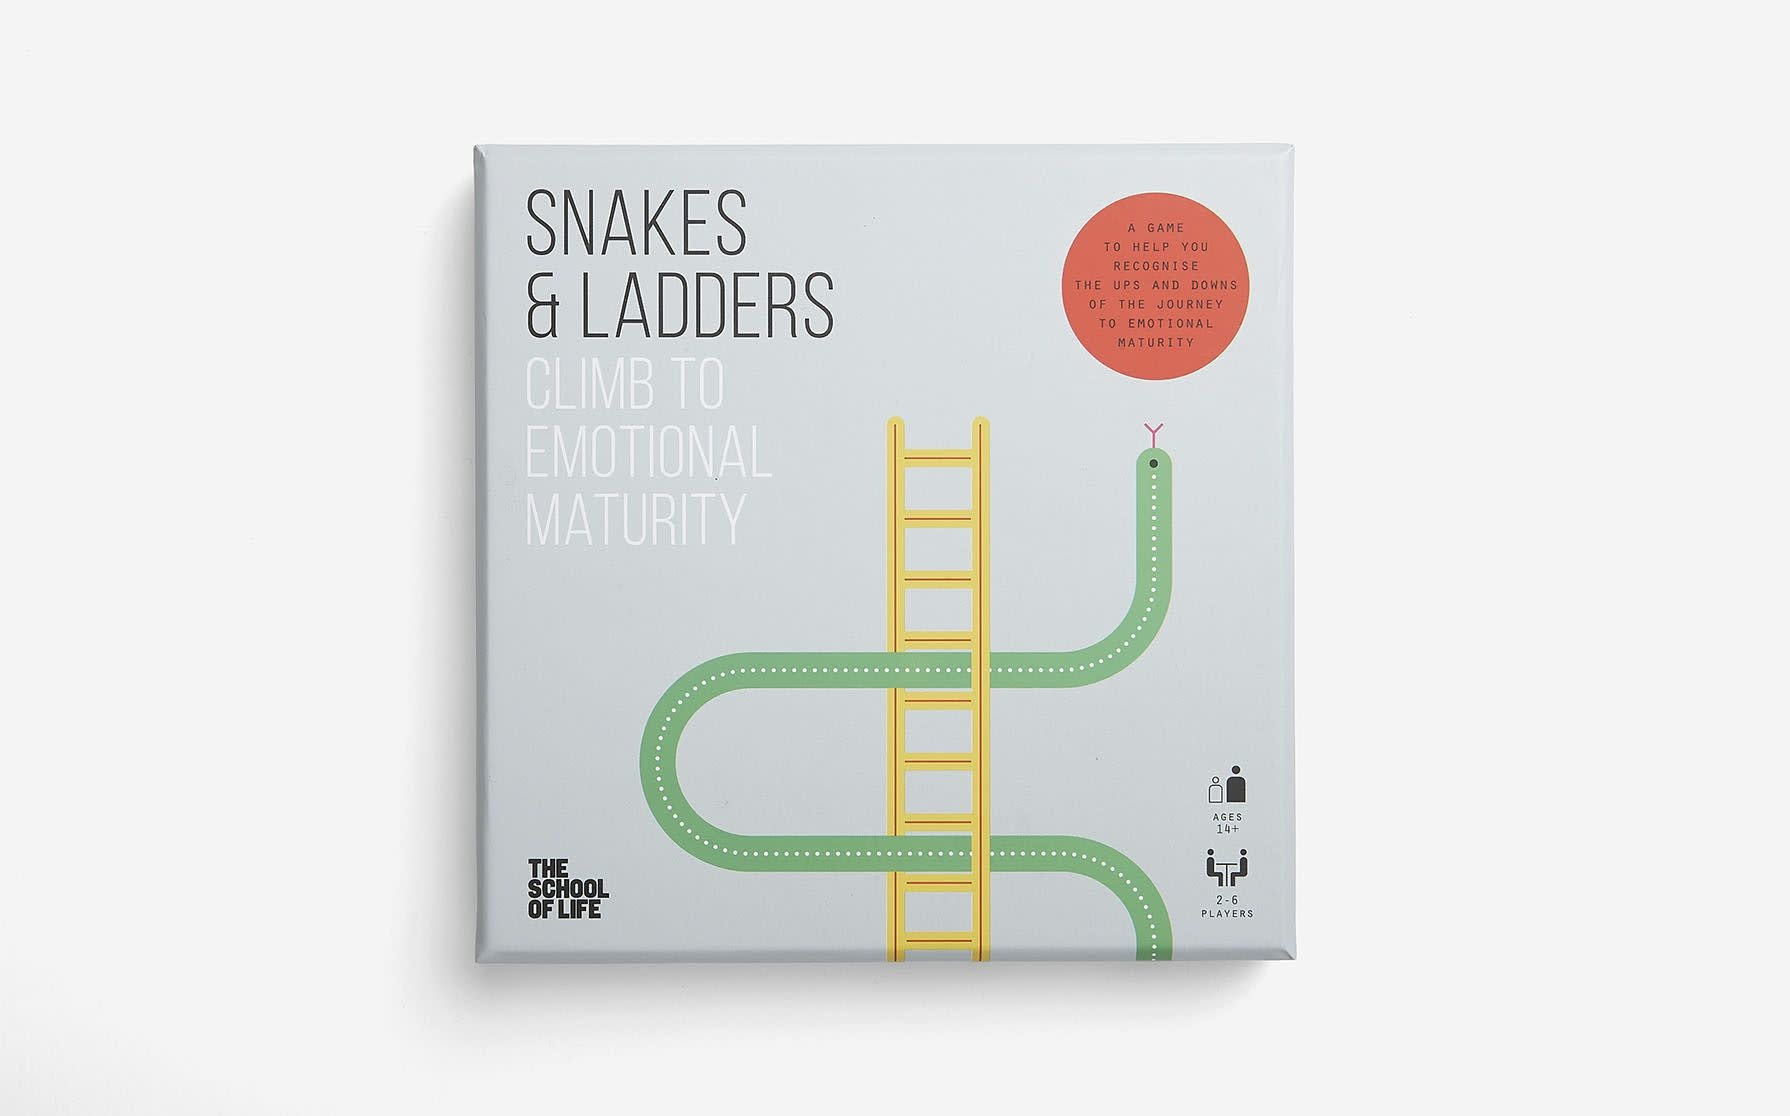 School of Life Board Game - Snakes & Ladders Emotional Maturity